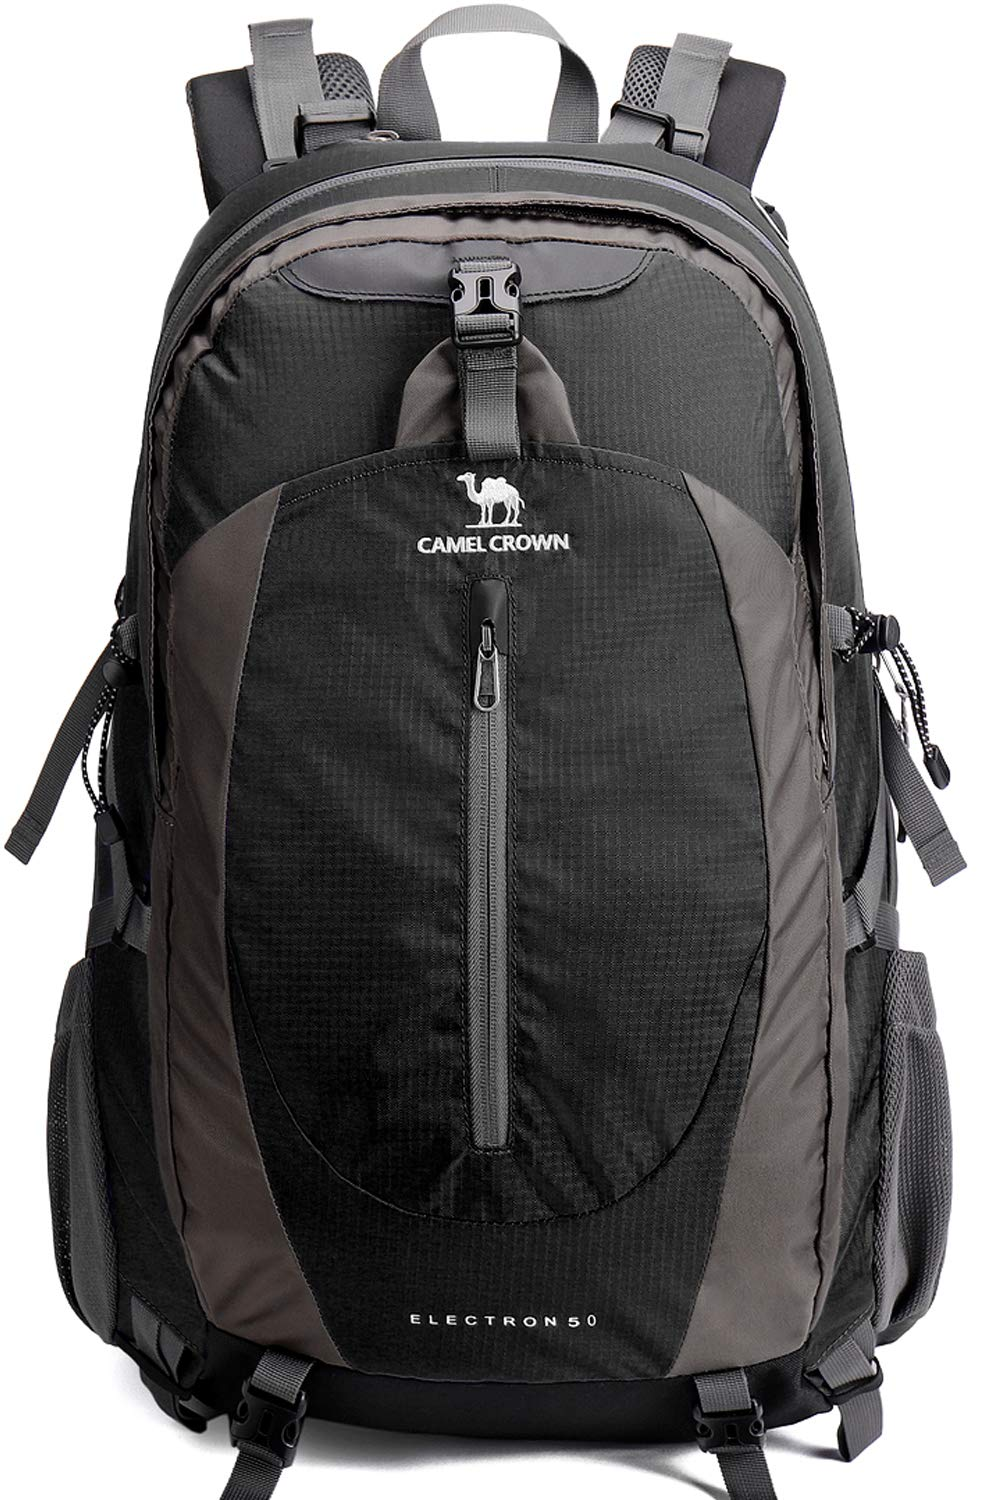 Sports & Entertainment Generous Outdoor Unisex Waterproof Backpack Rain Bag Cover Resistant Cover Hiking Camping Backpack Rucksack Bag For Adult